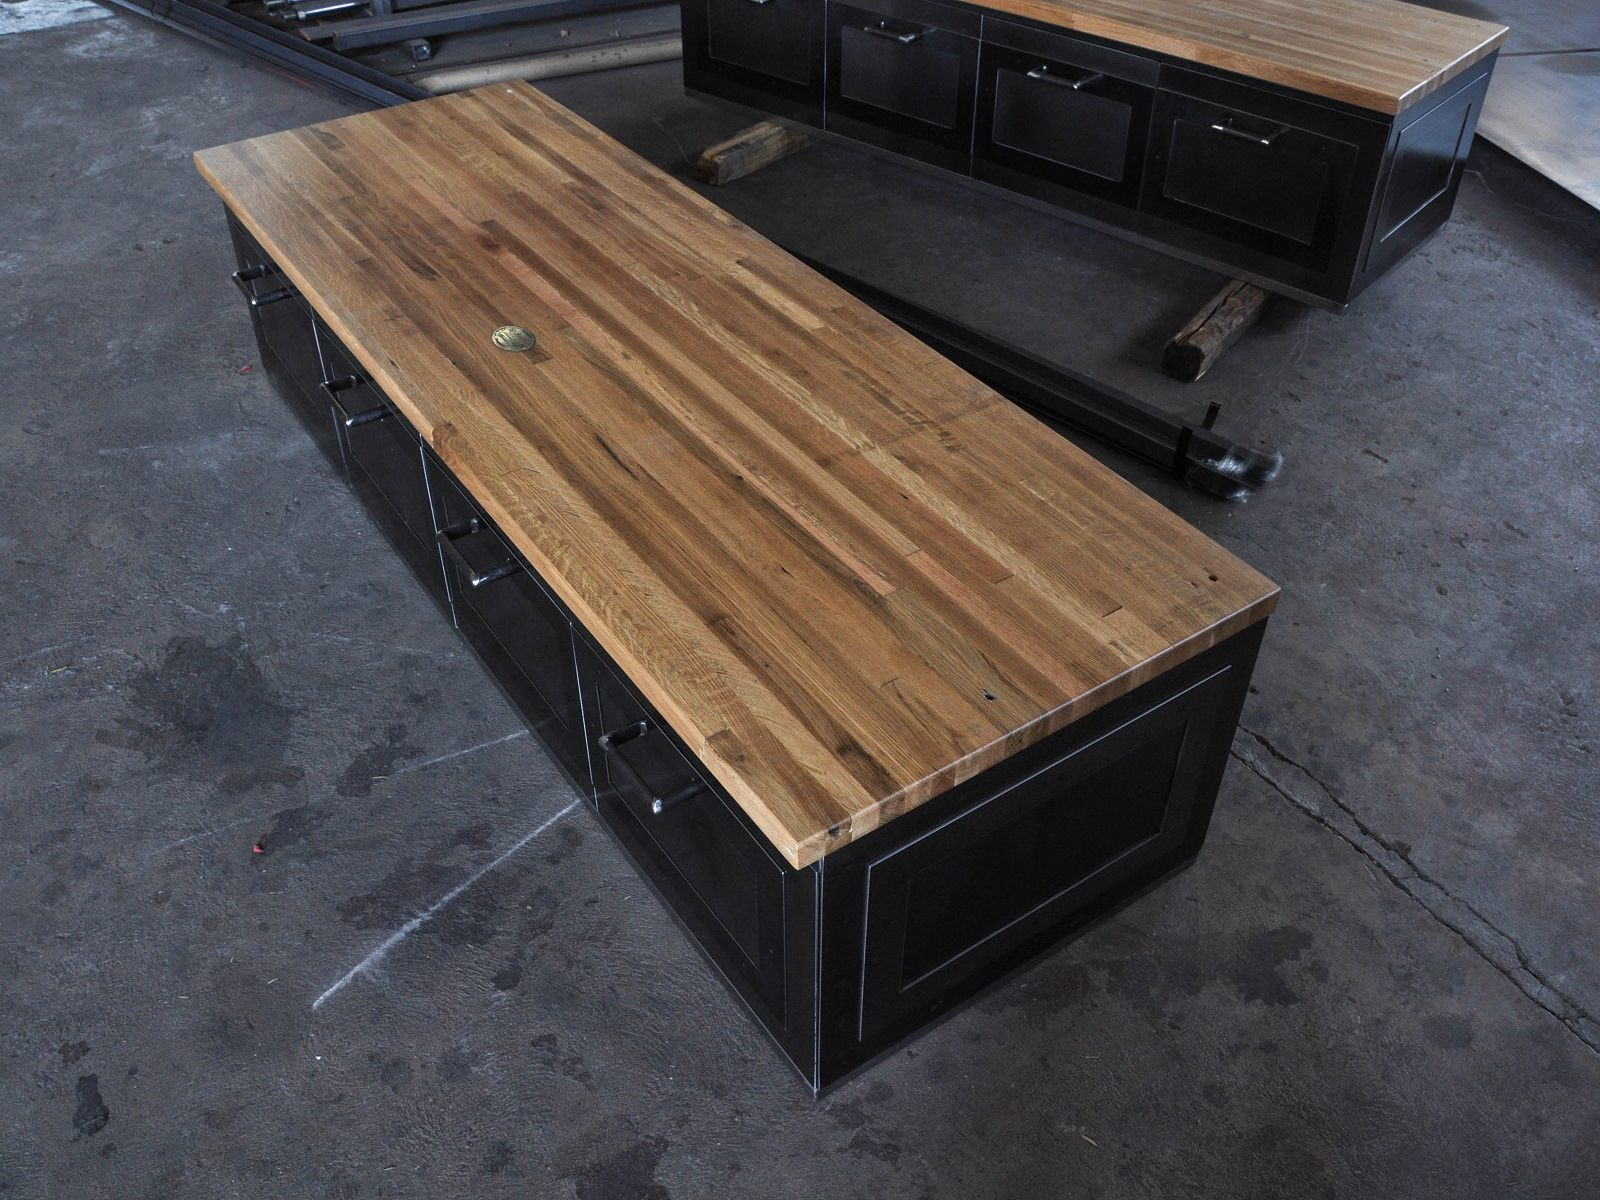 Industrial Benches For Sitting Mudroom Bench Vintage Industrial Furniture